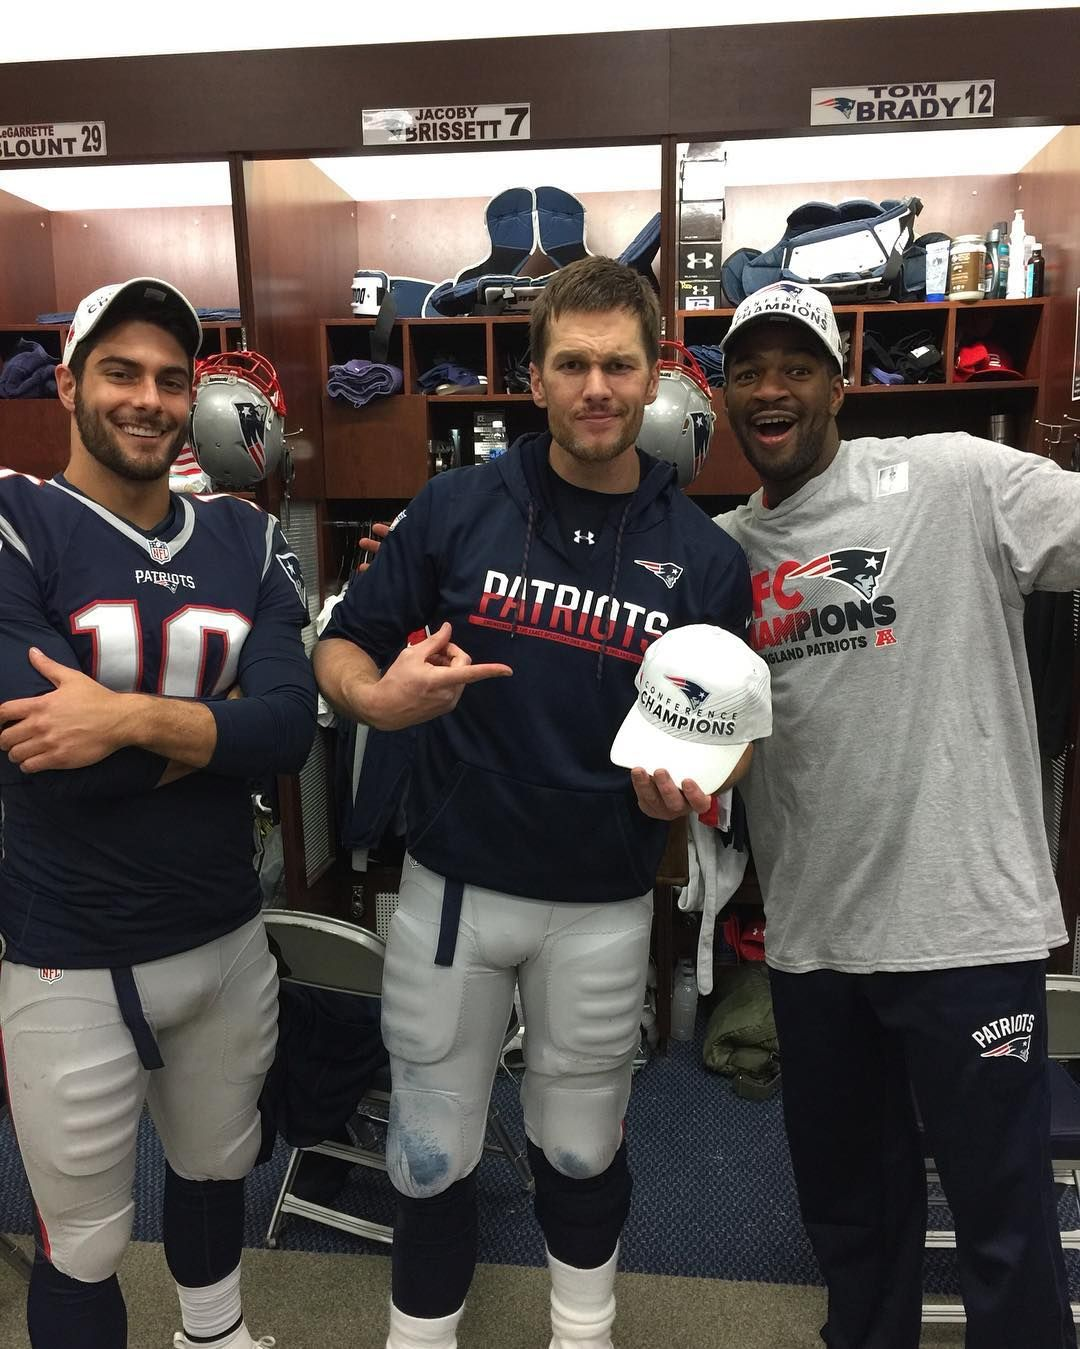 Tom Brady On Instagram You Guys Might Not Know This But I Consider Myself A Bit New England Patriots New England Patriots Logo New England Patriots Football